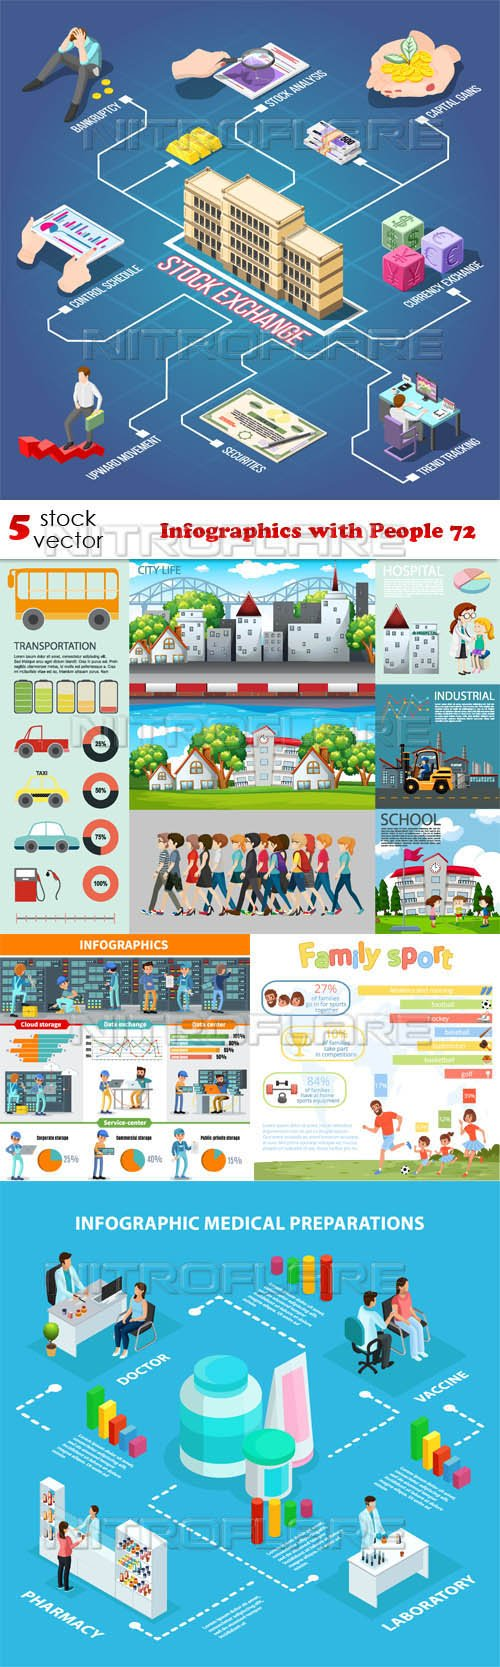 Vectors - Infographics with People 72